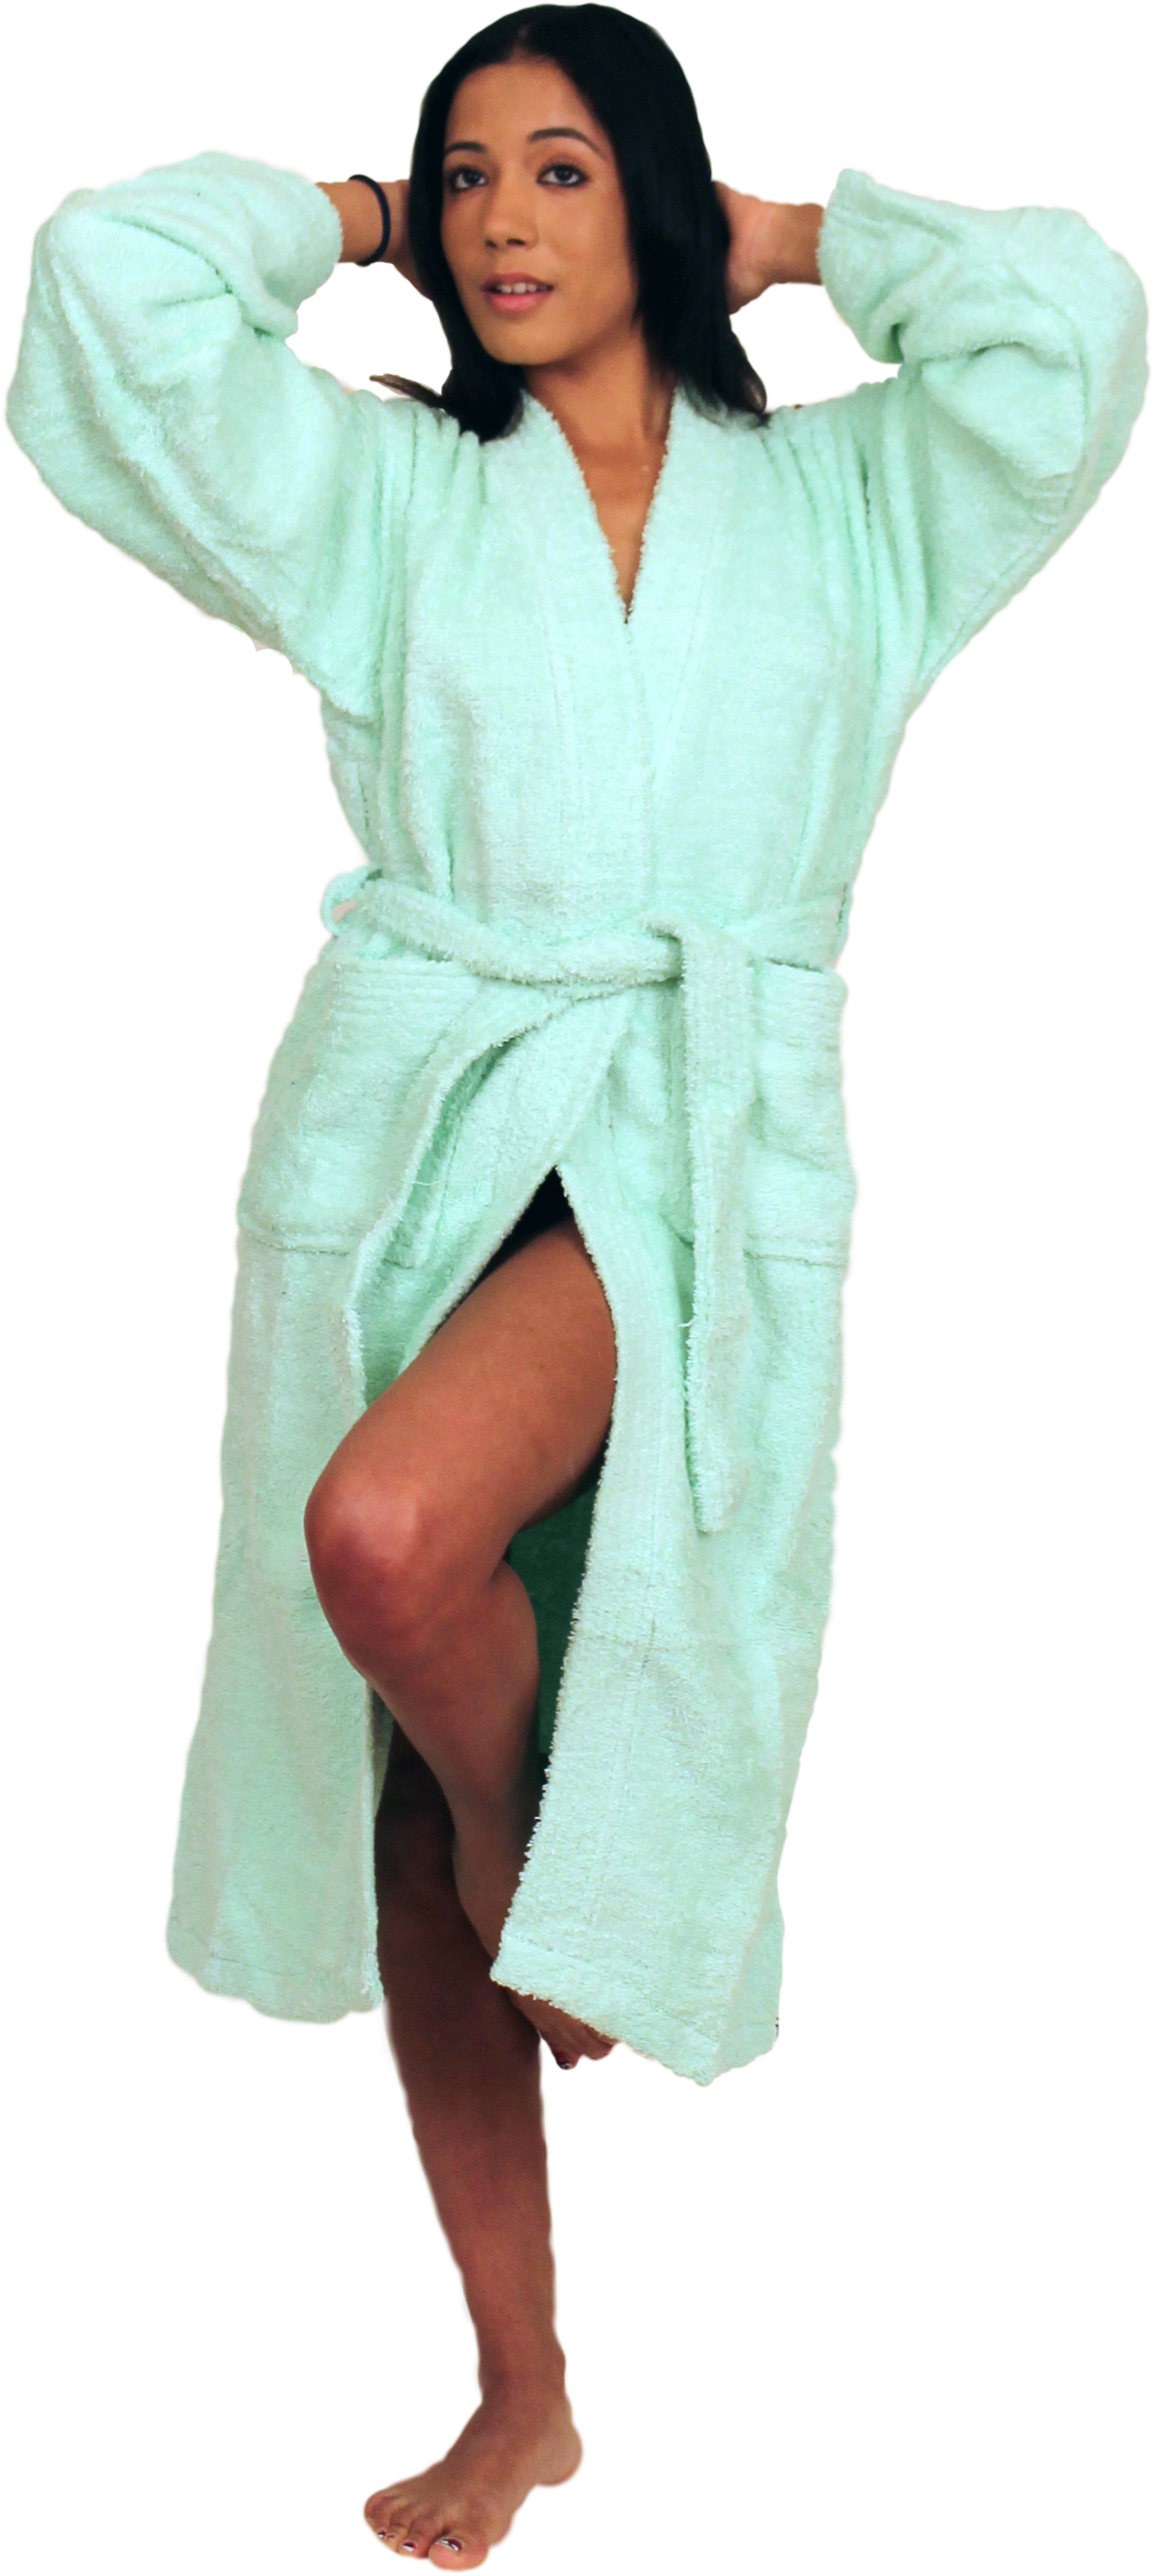 b1616e0420 Bathrobes Terry cloth robes for women from  15 Spa Hotel quality terrycloth  women s robe